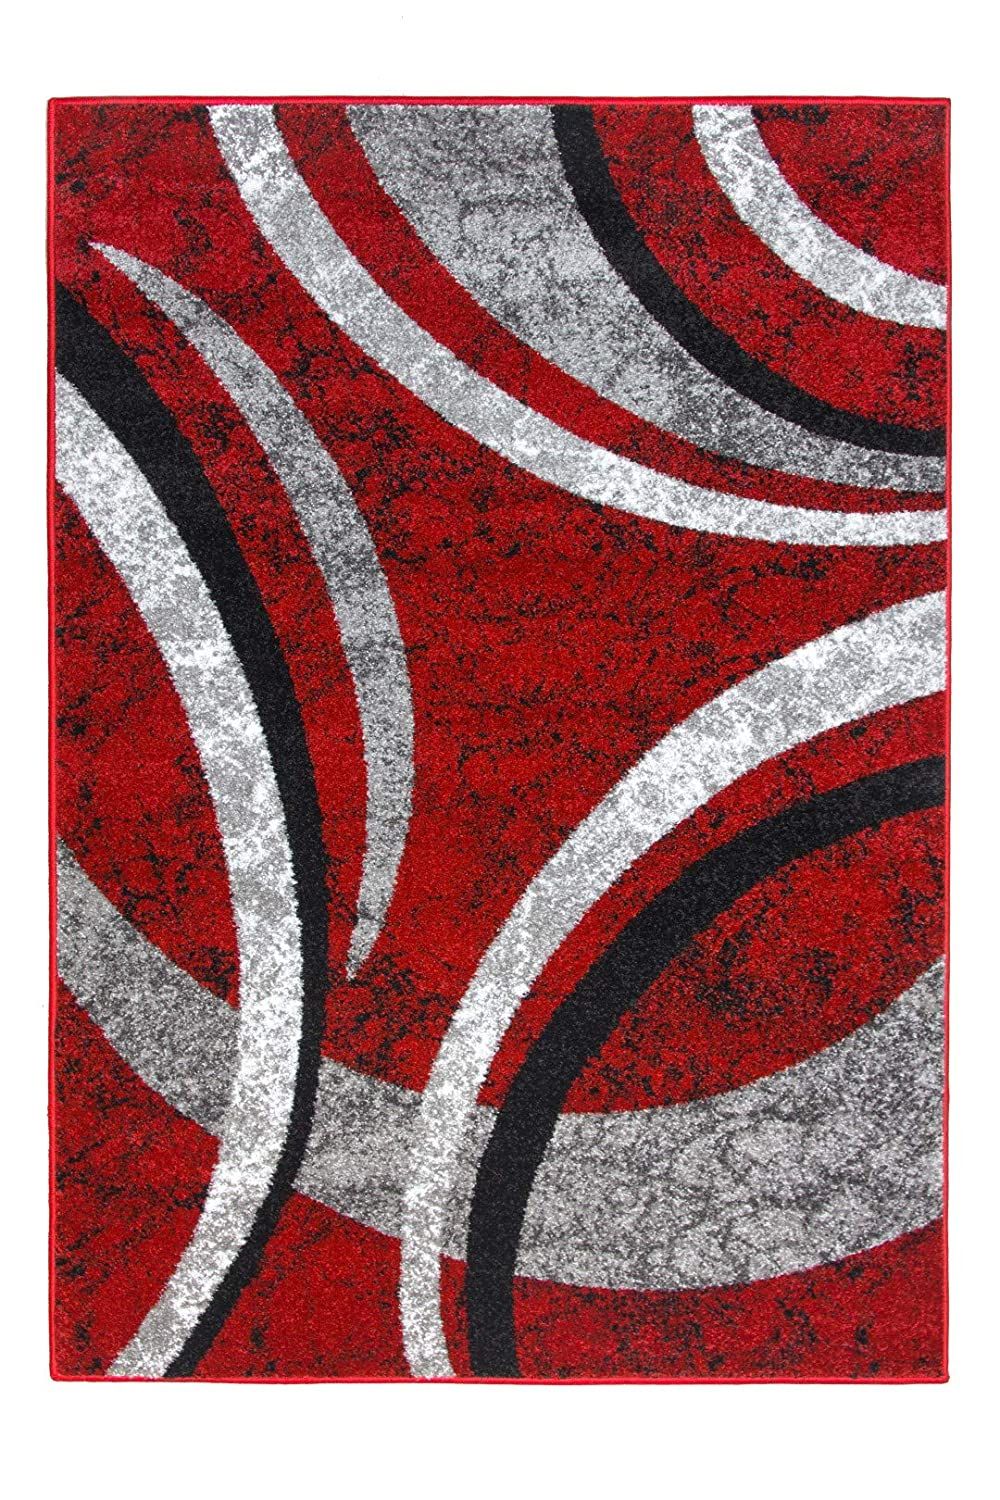 Diamond Soft Modern Arcs Arc Lines Red Black Grey Soft Thick Rug Available In Different Sizes (80cm x 150cm 2ft 7